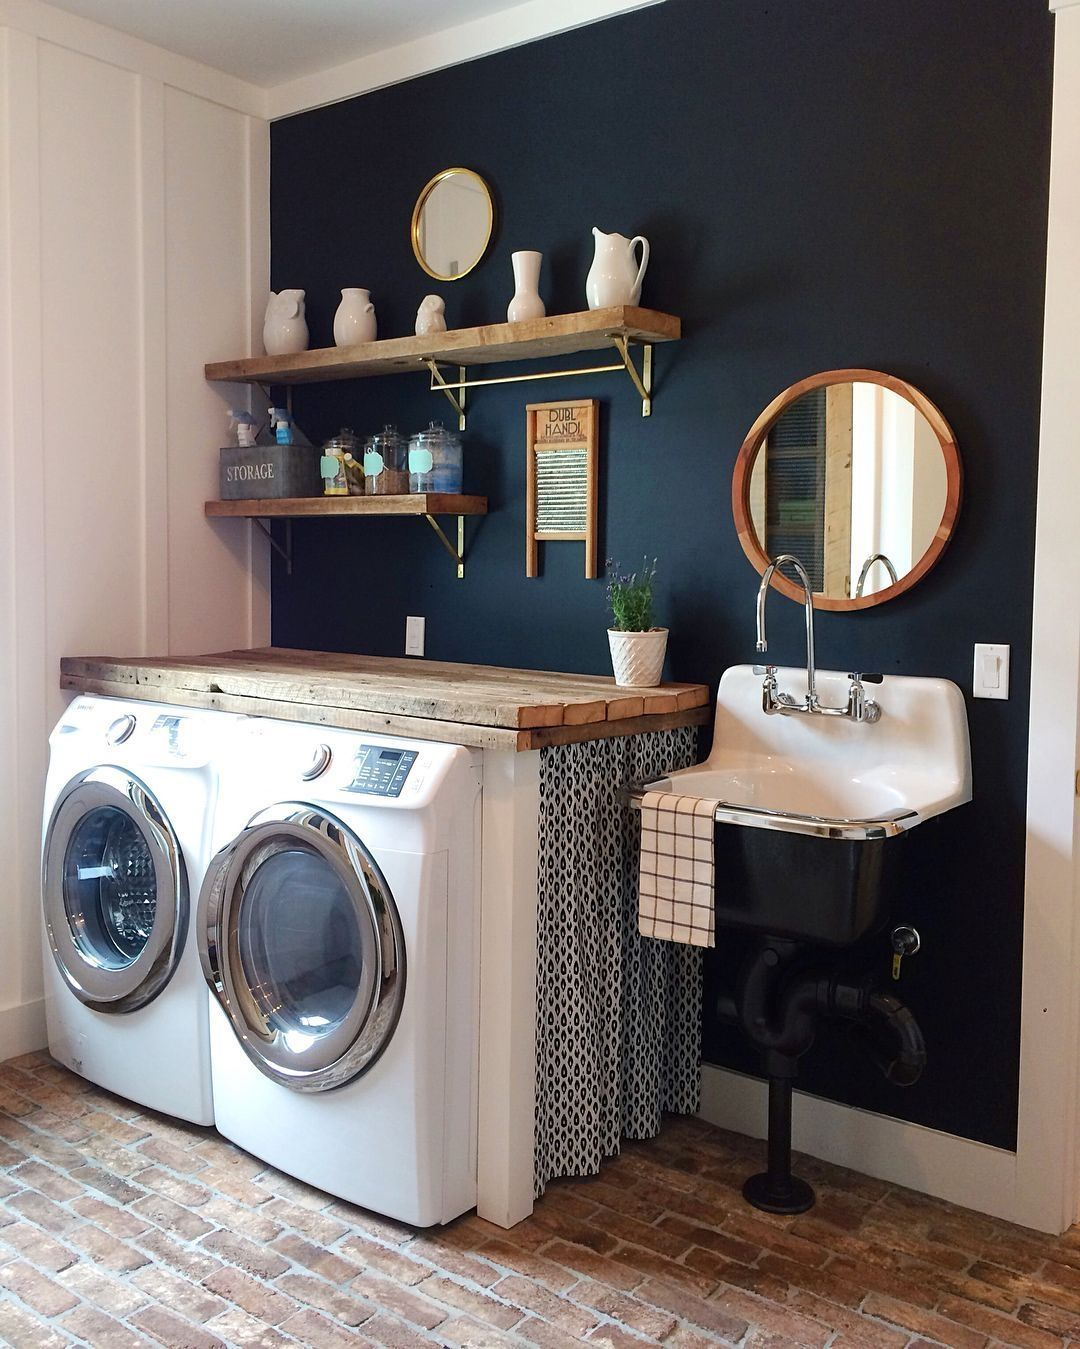 10 great modern farmhouse small laundry room ideas on extraordinary small laundry room design and decorating ideas modest laundry space id=19930